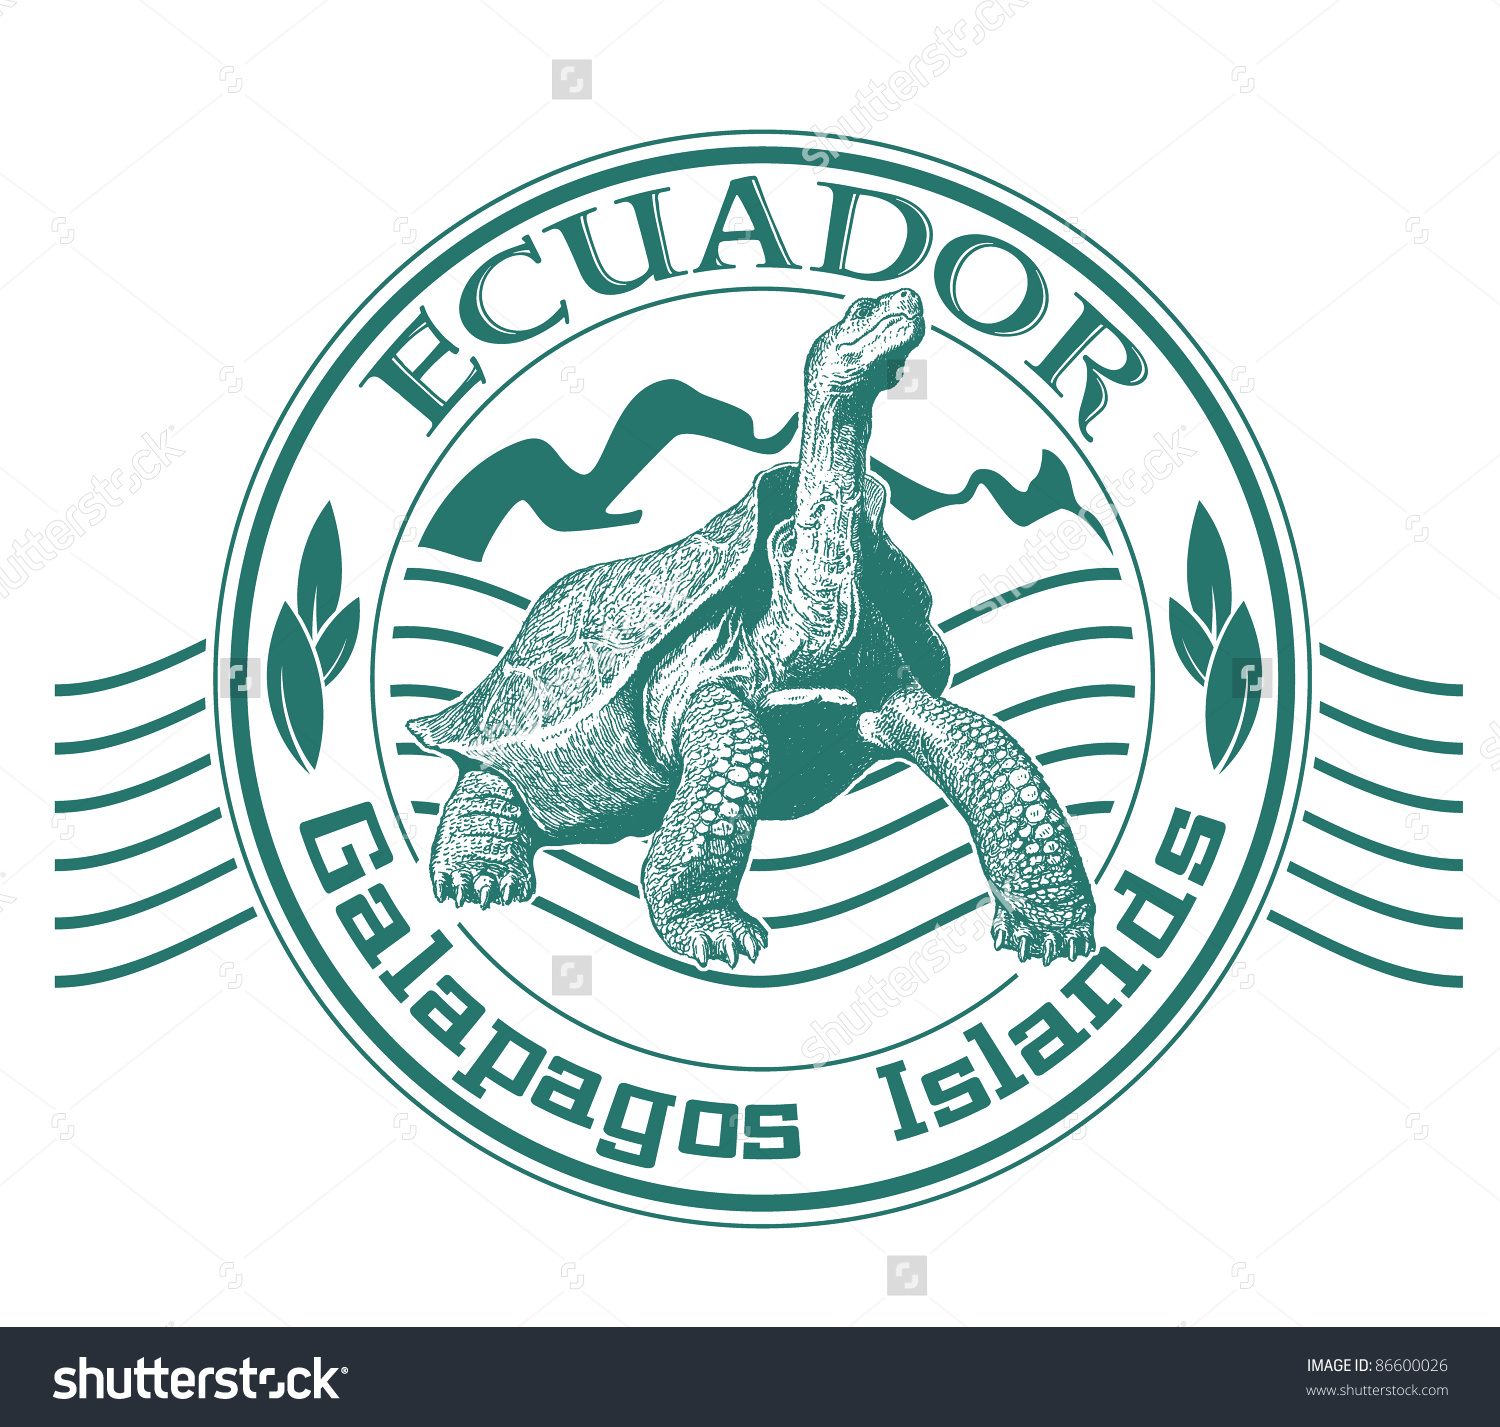 Galapagos Islands Stamp Stock Vector 86600026.